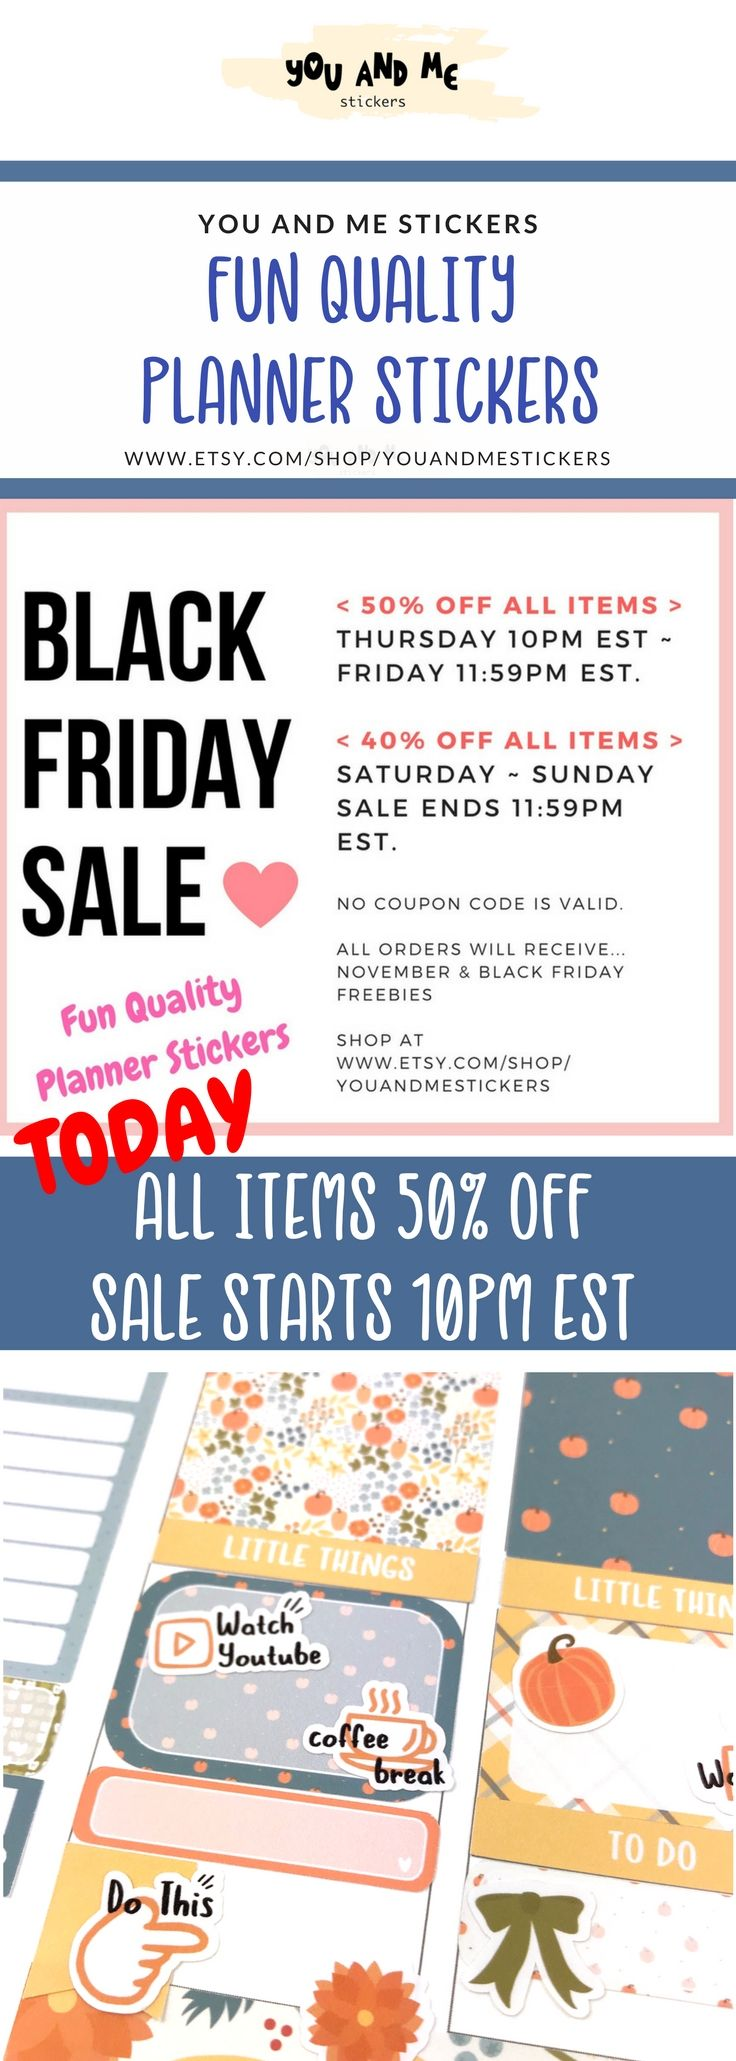 Black Friday Sale ALERT!  All Planner Stickers are 50% off at You and me Stickers! You can also get Full Weekly Kits for Erin Condren Life Planner with 50% Off! No Coupon code is needed. Check out our Fun, Quality Planner Stickers! Please visit at www.etsy.com/shop/youandmestickers             #plannerstickers #plannercommunity #plannergirl #planneraddict #Planners #erincondren #happyplanner #bulletjournal #weeklykit #weeklystickers #fallstickers #novemberstickers